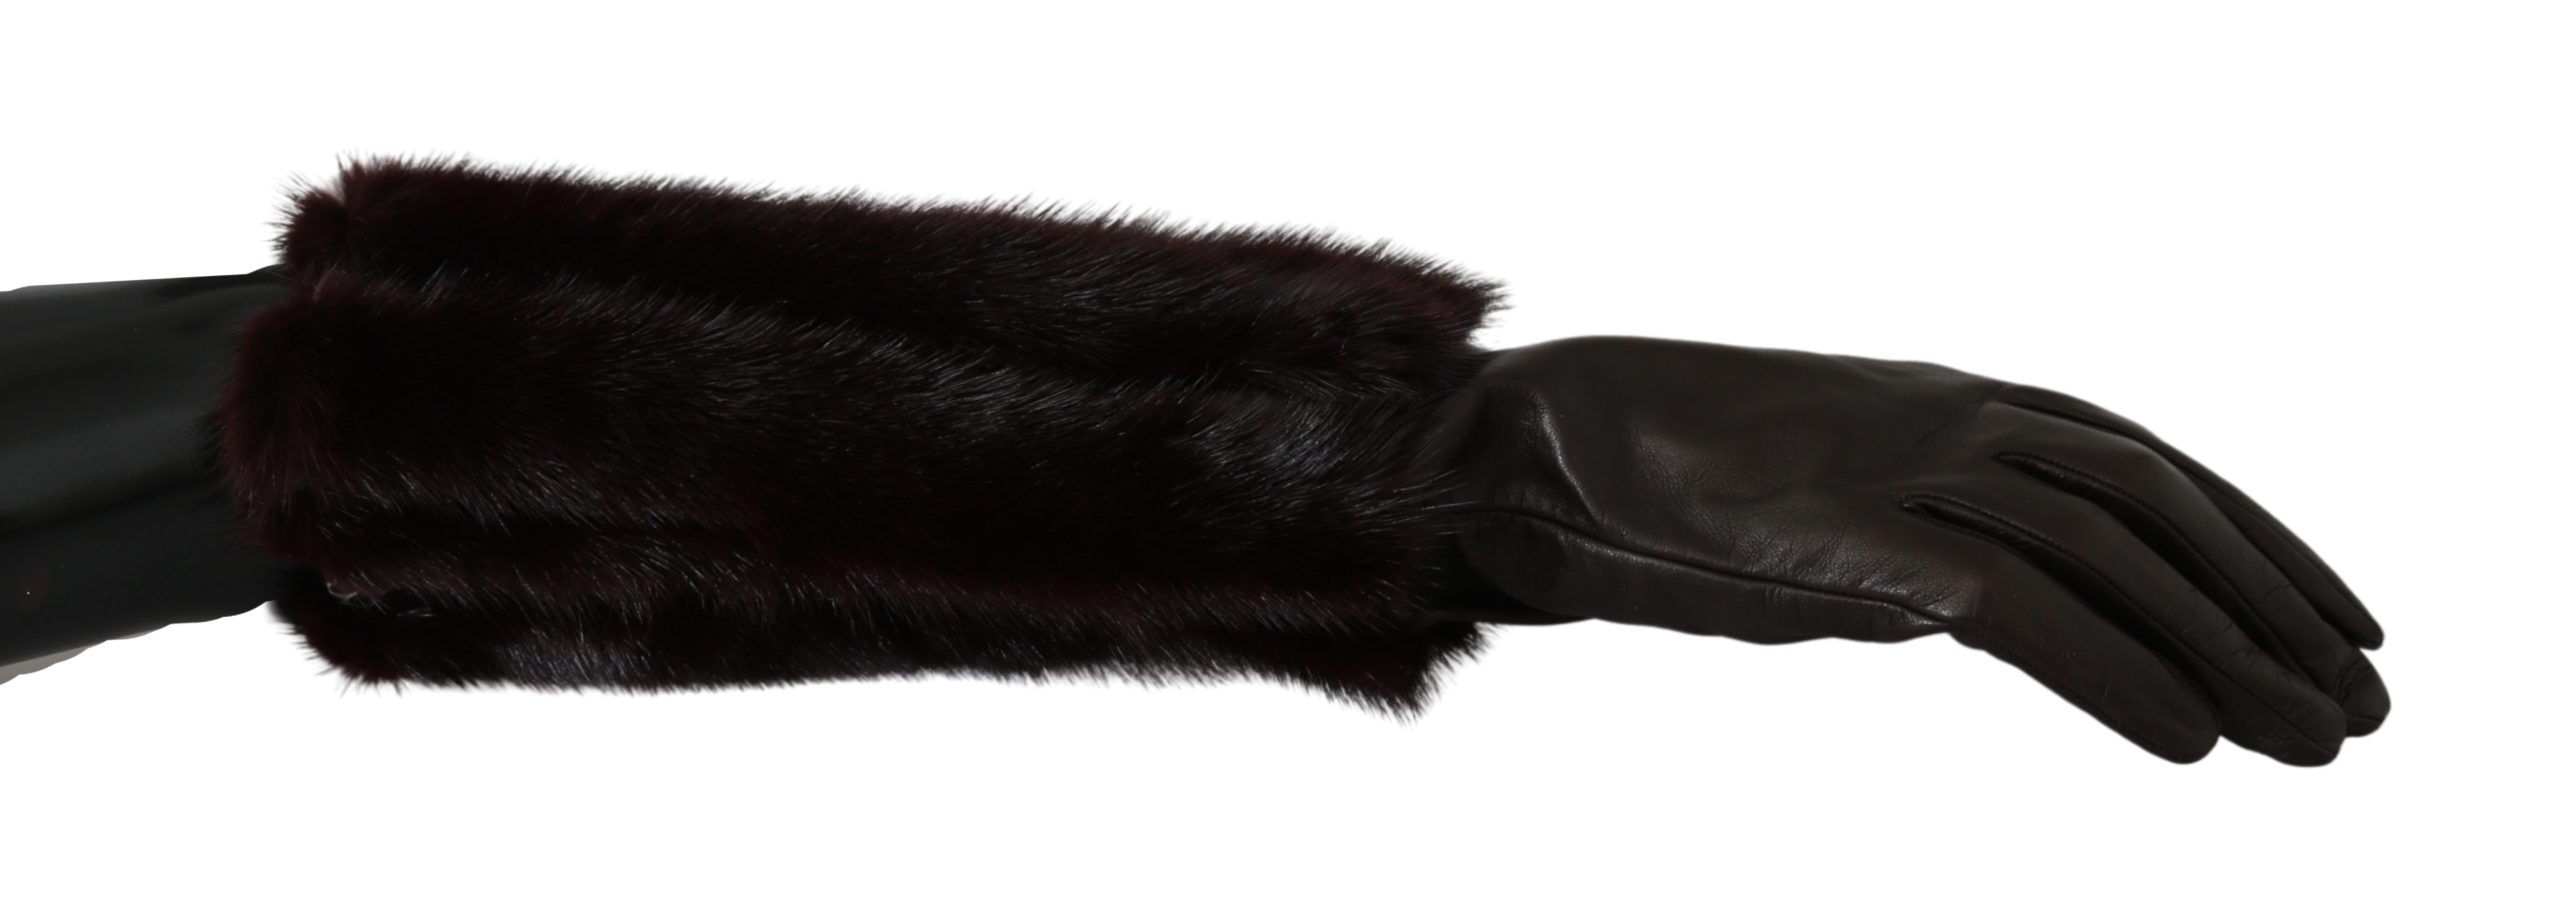 Dolce & Gabbana Women's Mid Arm Length Leather Fur Gloves Brown LB1007 - 7.5|S